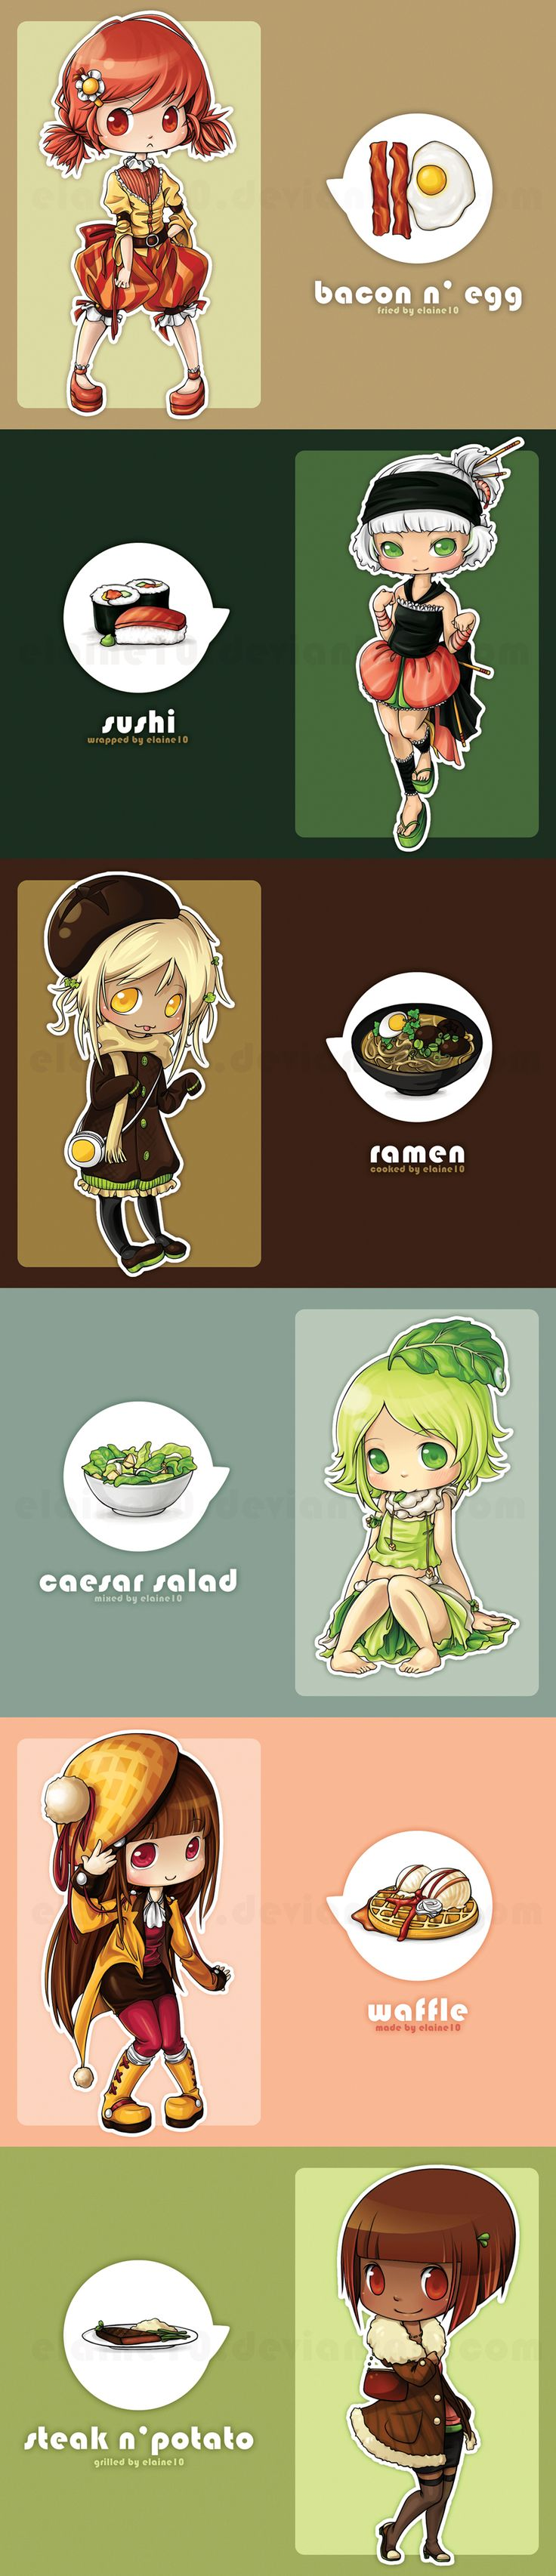 Food Series by Elaine10.deviantart.com on @deviantART - Personified anime foods? Well, why not?